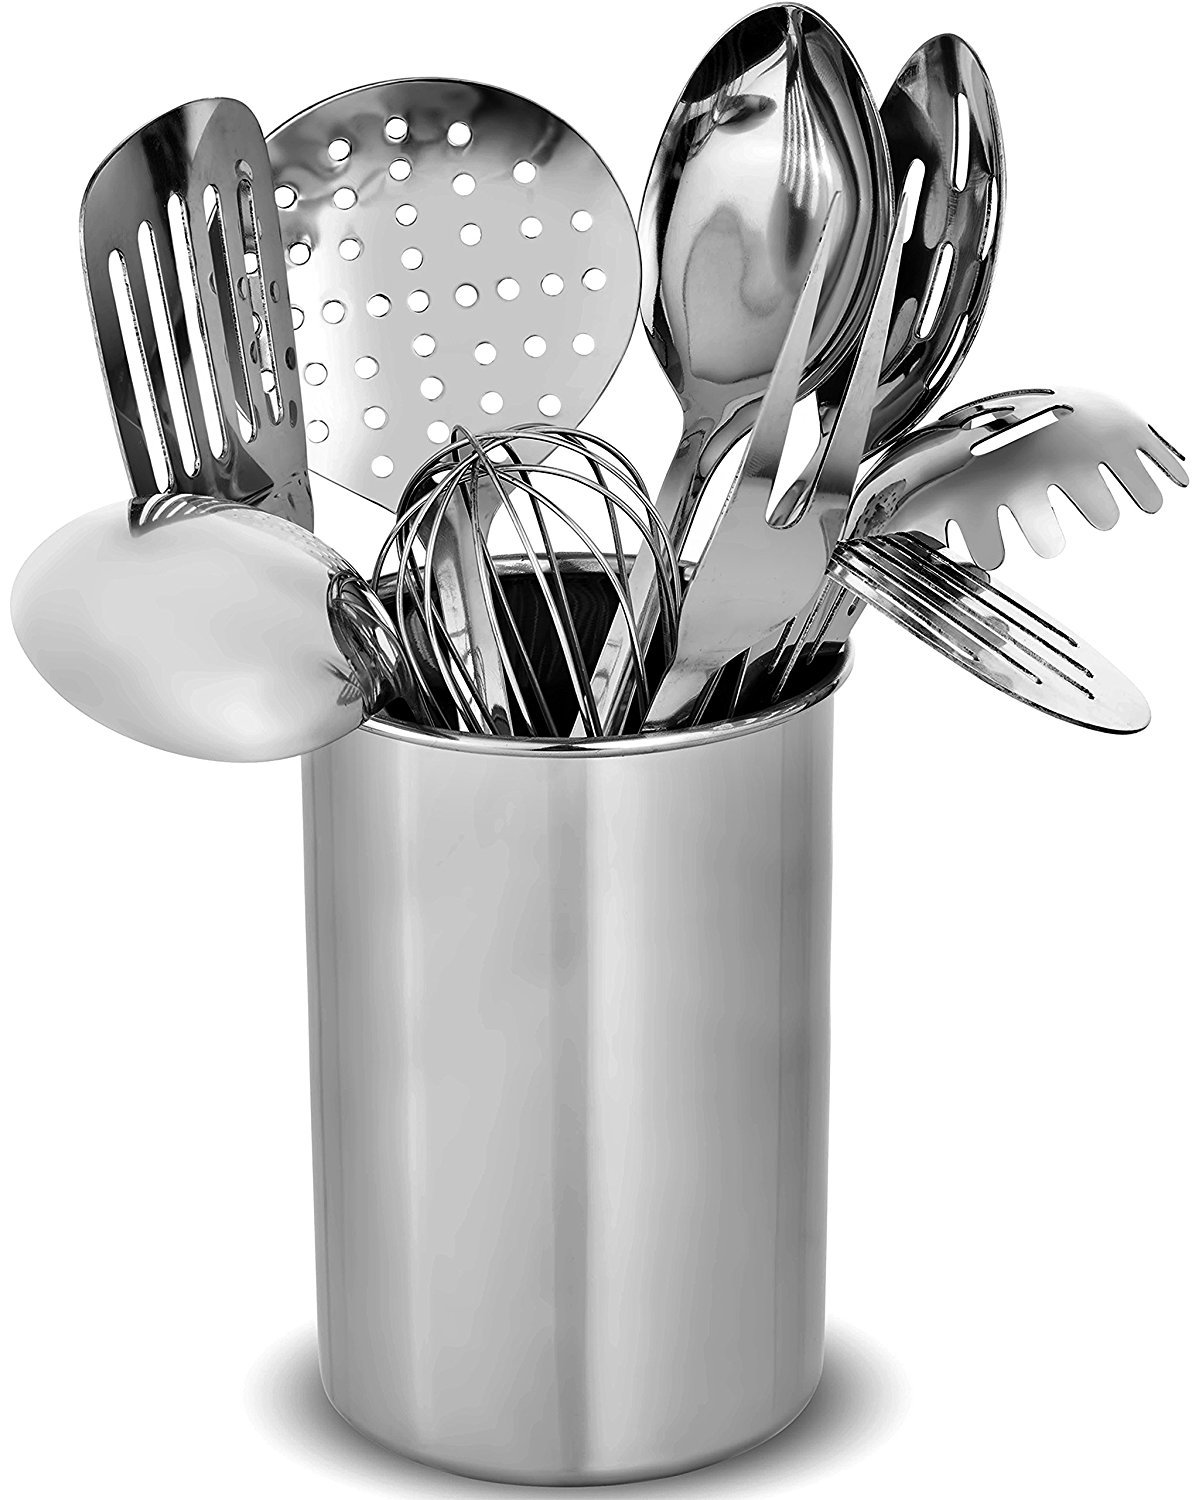 FINEDINE Stainless Steel Utensil Sets - 10-Piece Kitchen Gadgets Set, Non Stick Cooking & Serving Spoons, Slotted Turner Spatula, Spaghetti & Pasta Server, Ladle, Whisk, Meat Fork & Utensils Holder FD-S1601